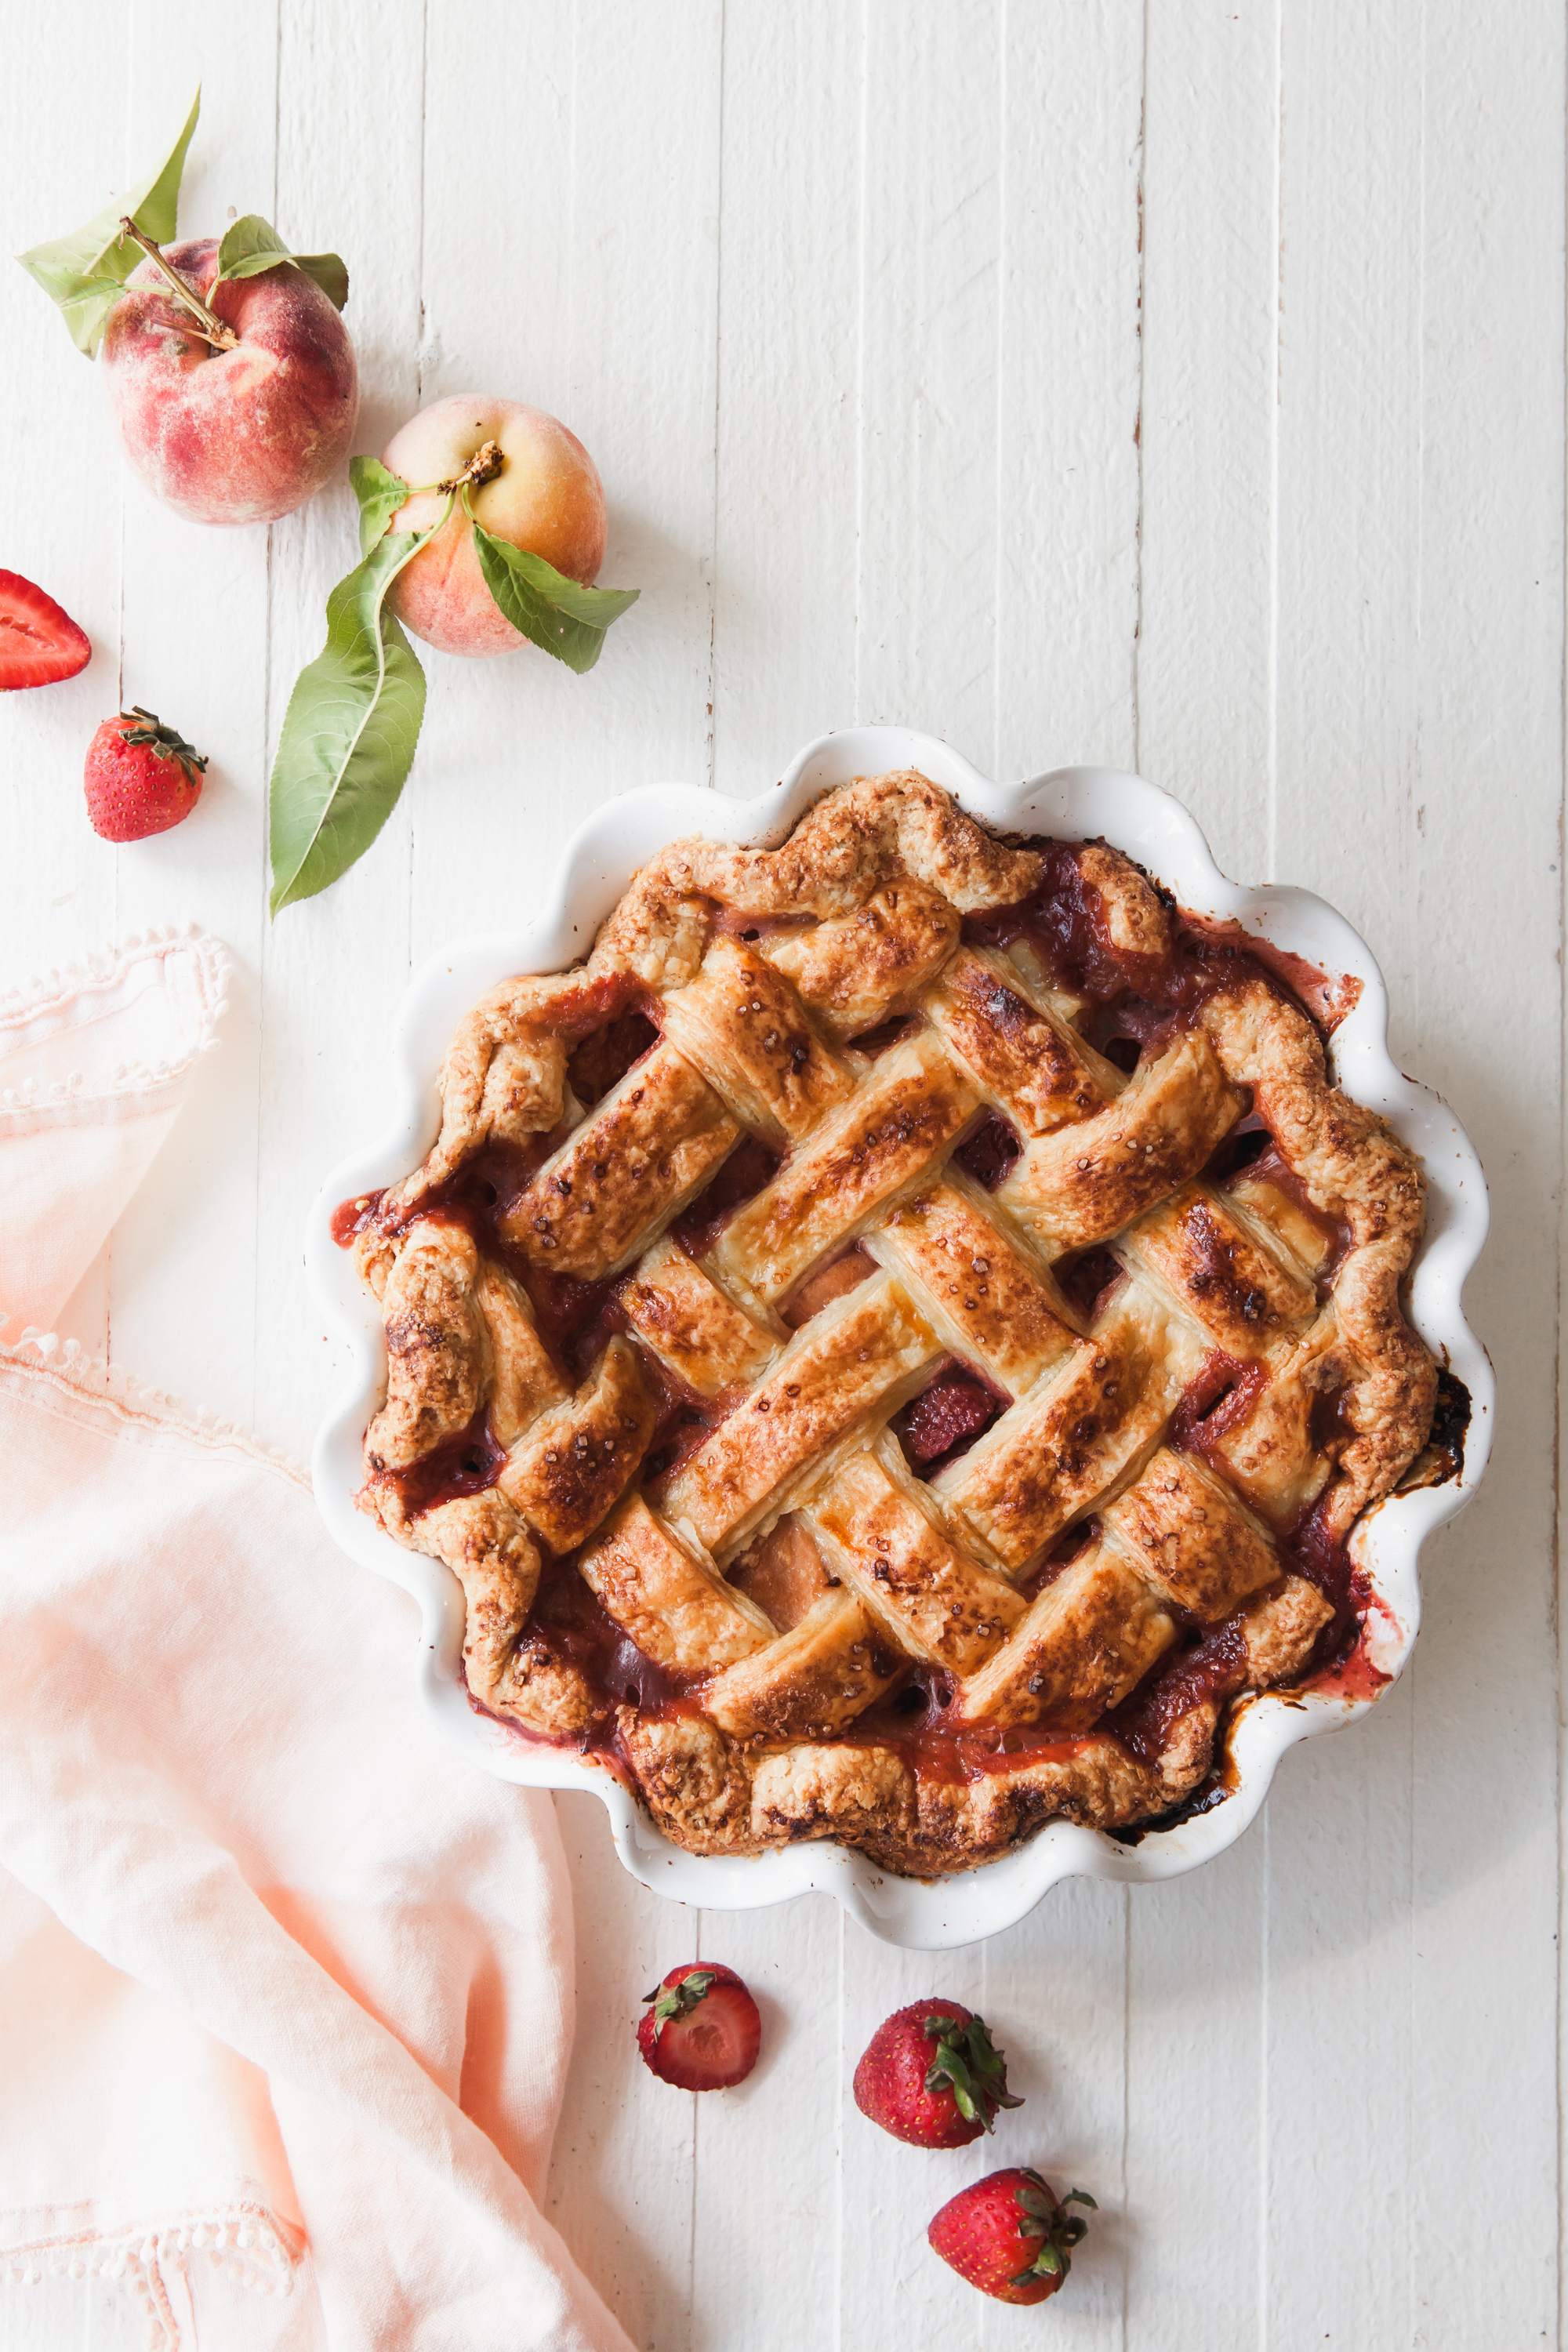 Strawberry Peach Pie Recipe with brown sugar and an all butter crust